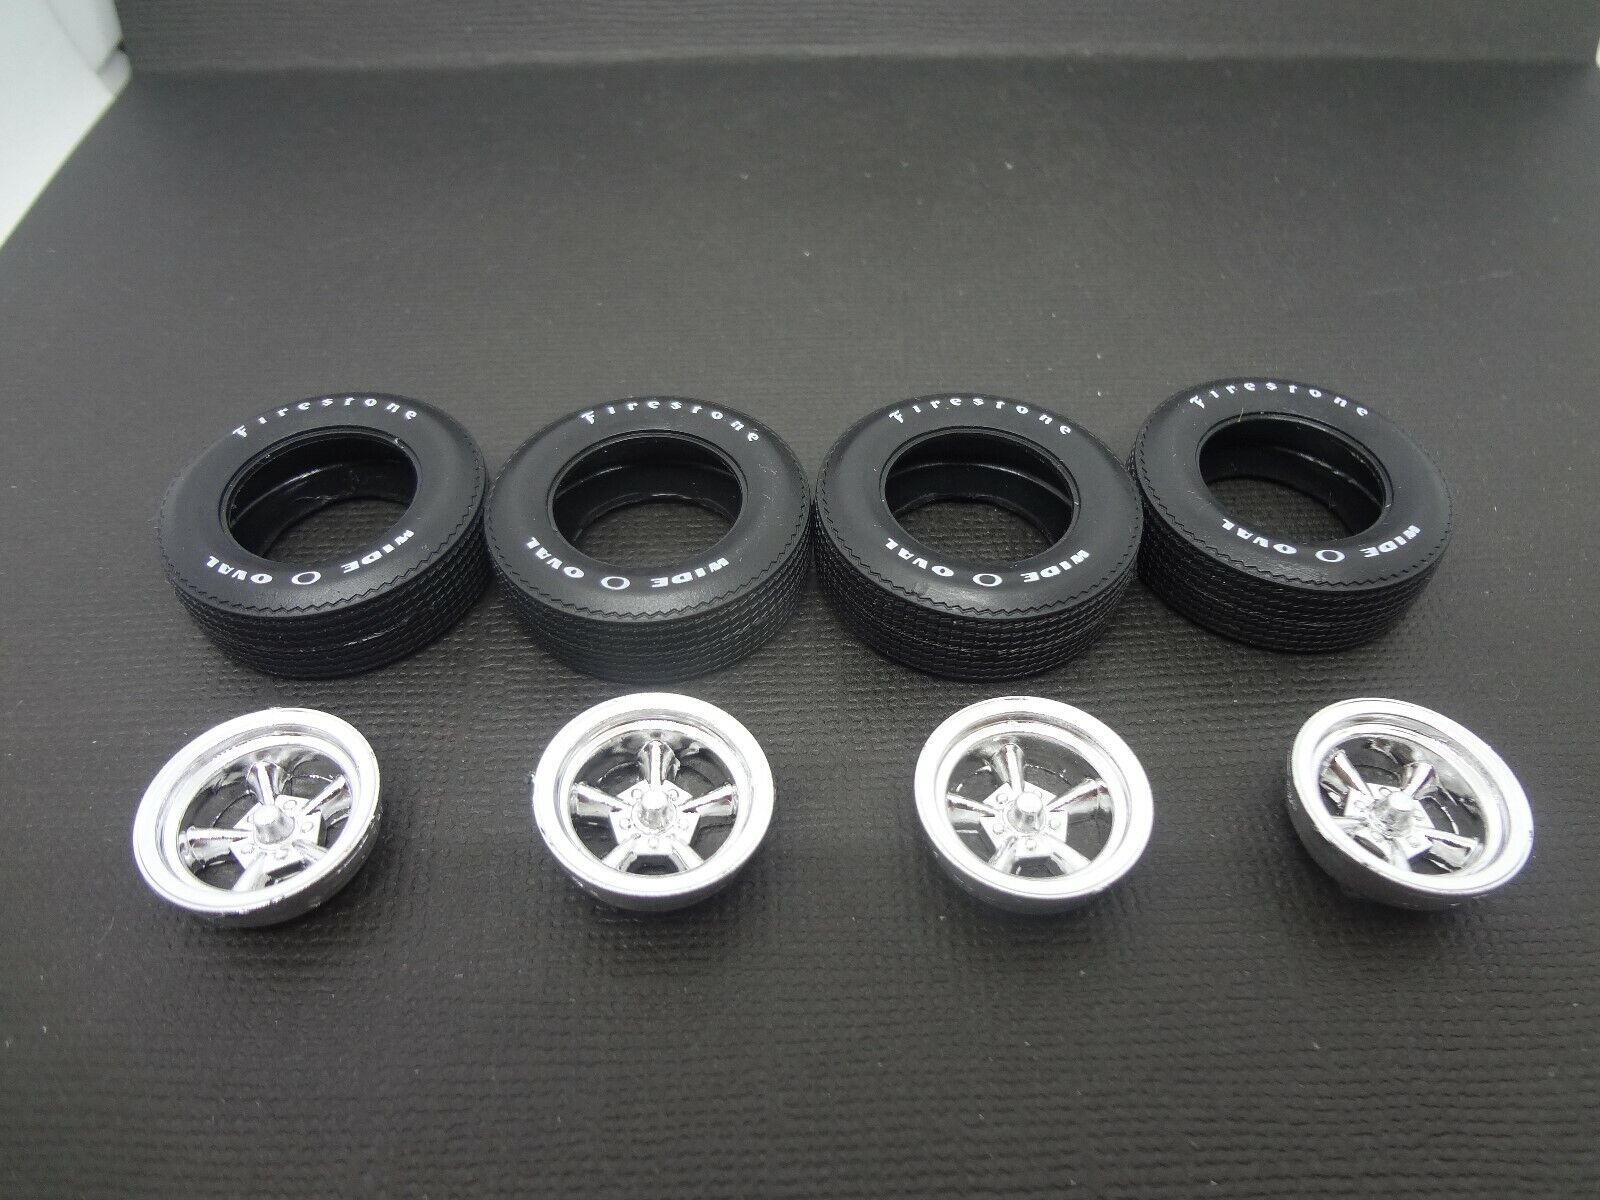 Car Parts - 1:25 scale model car parts Wild Wheels & Wide Ovals Classic 5 Spoke Mags + Tires